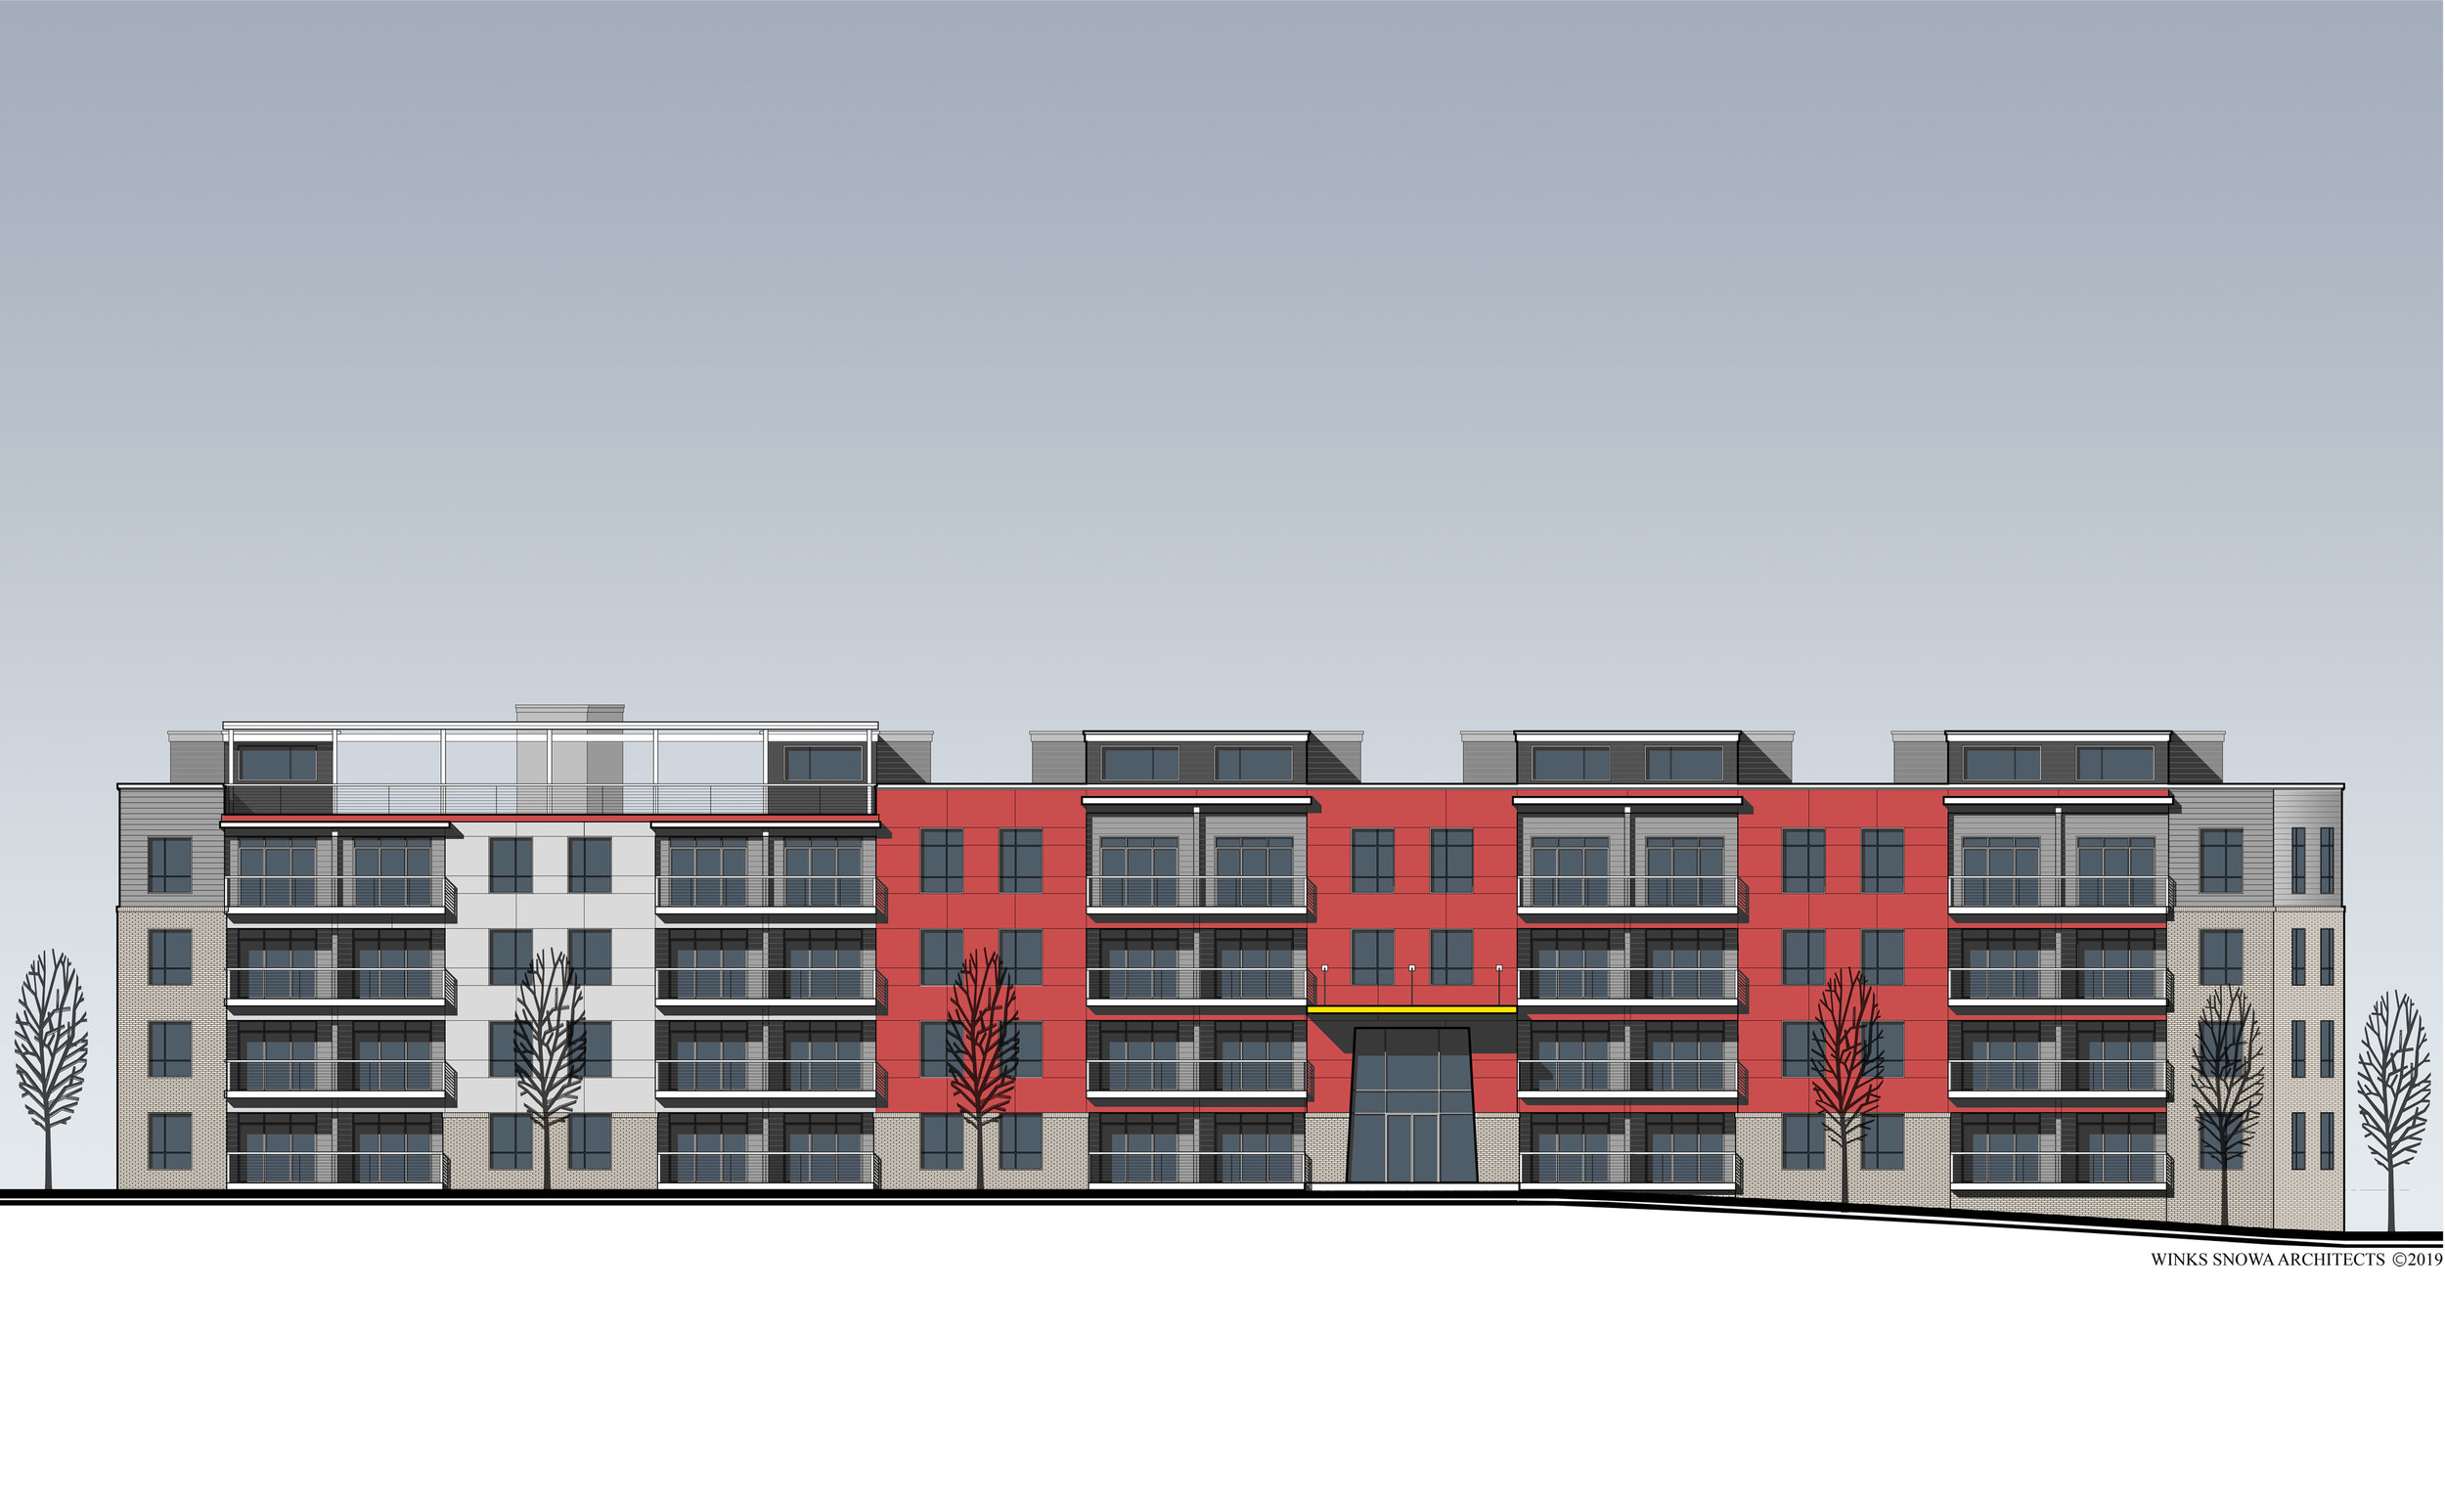 Multifamily Housing -  Proposed front building elevation showing fully accessible roof deck and garden